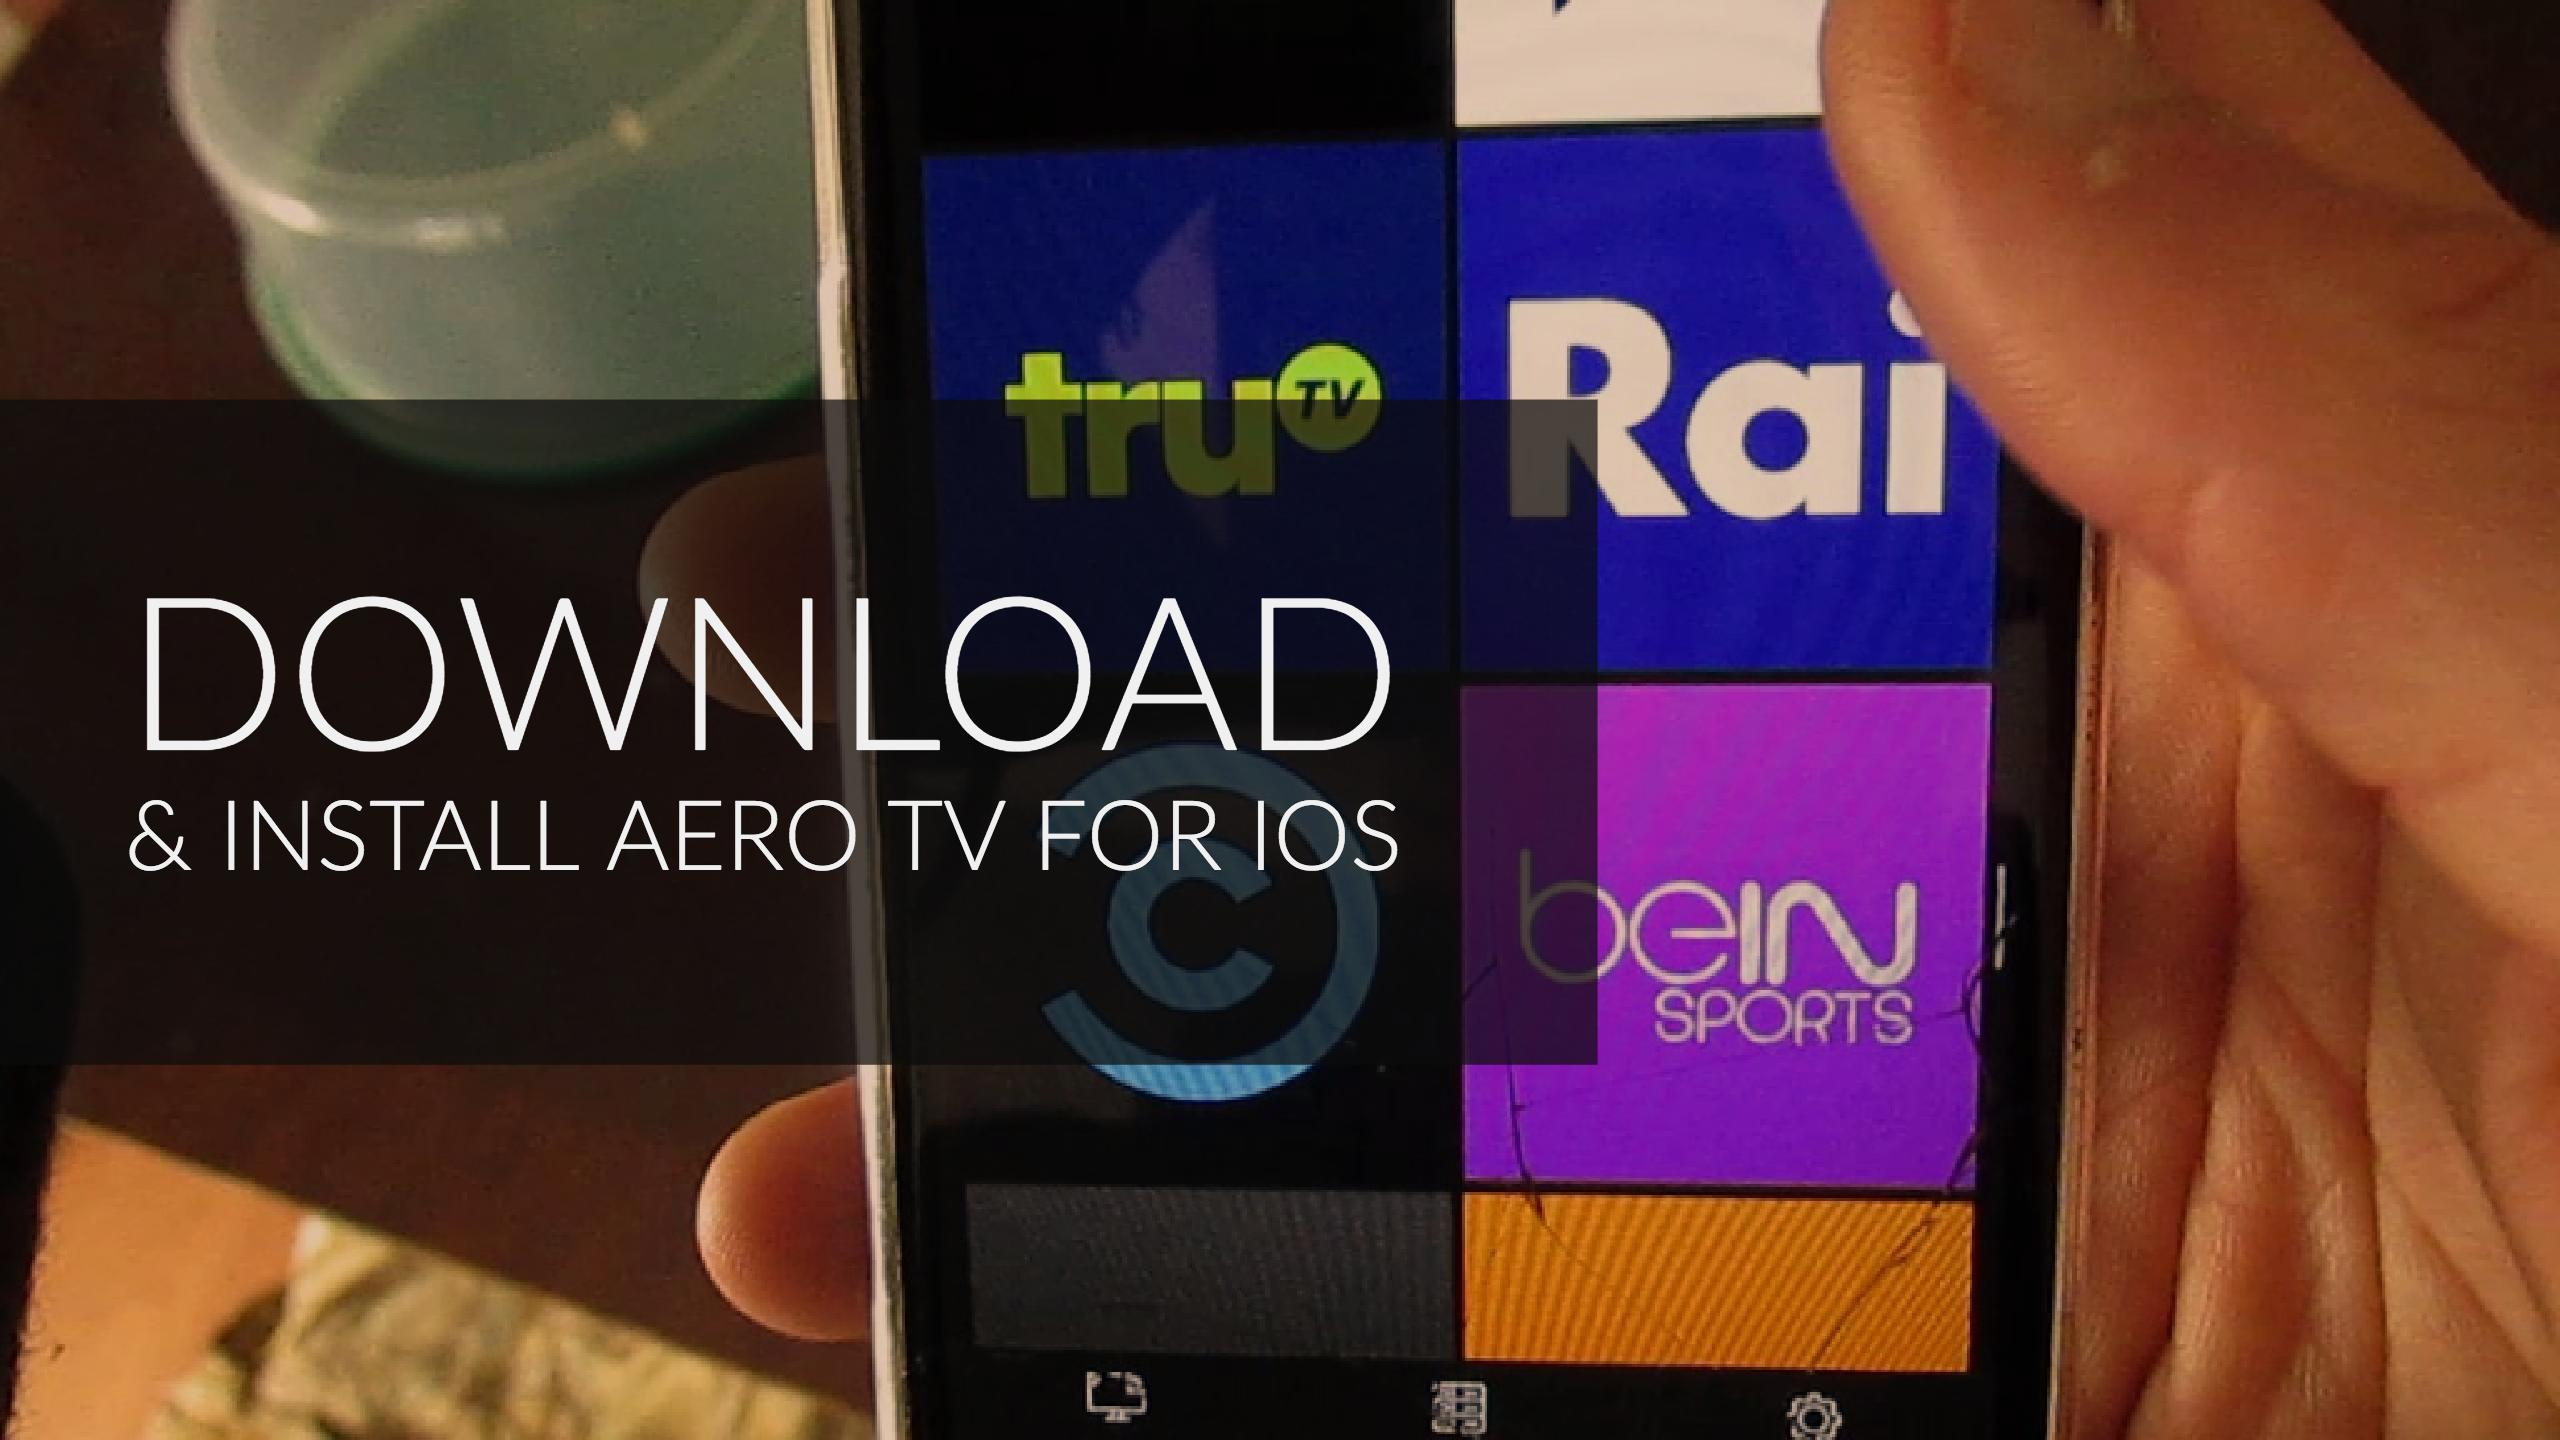 download aero tv app for iOS